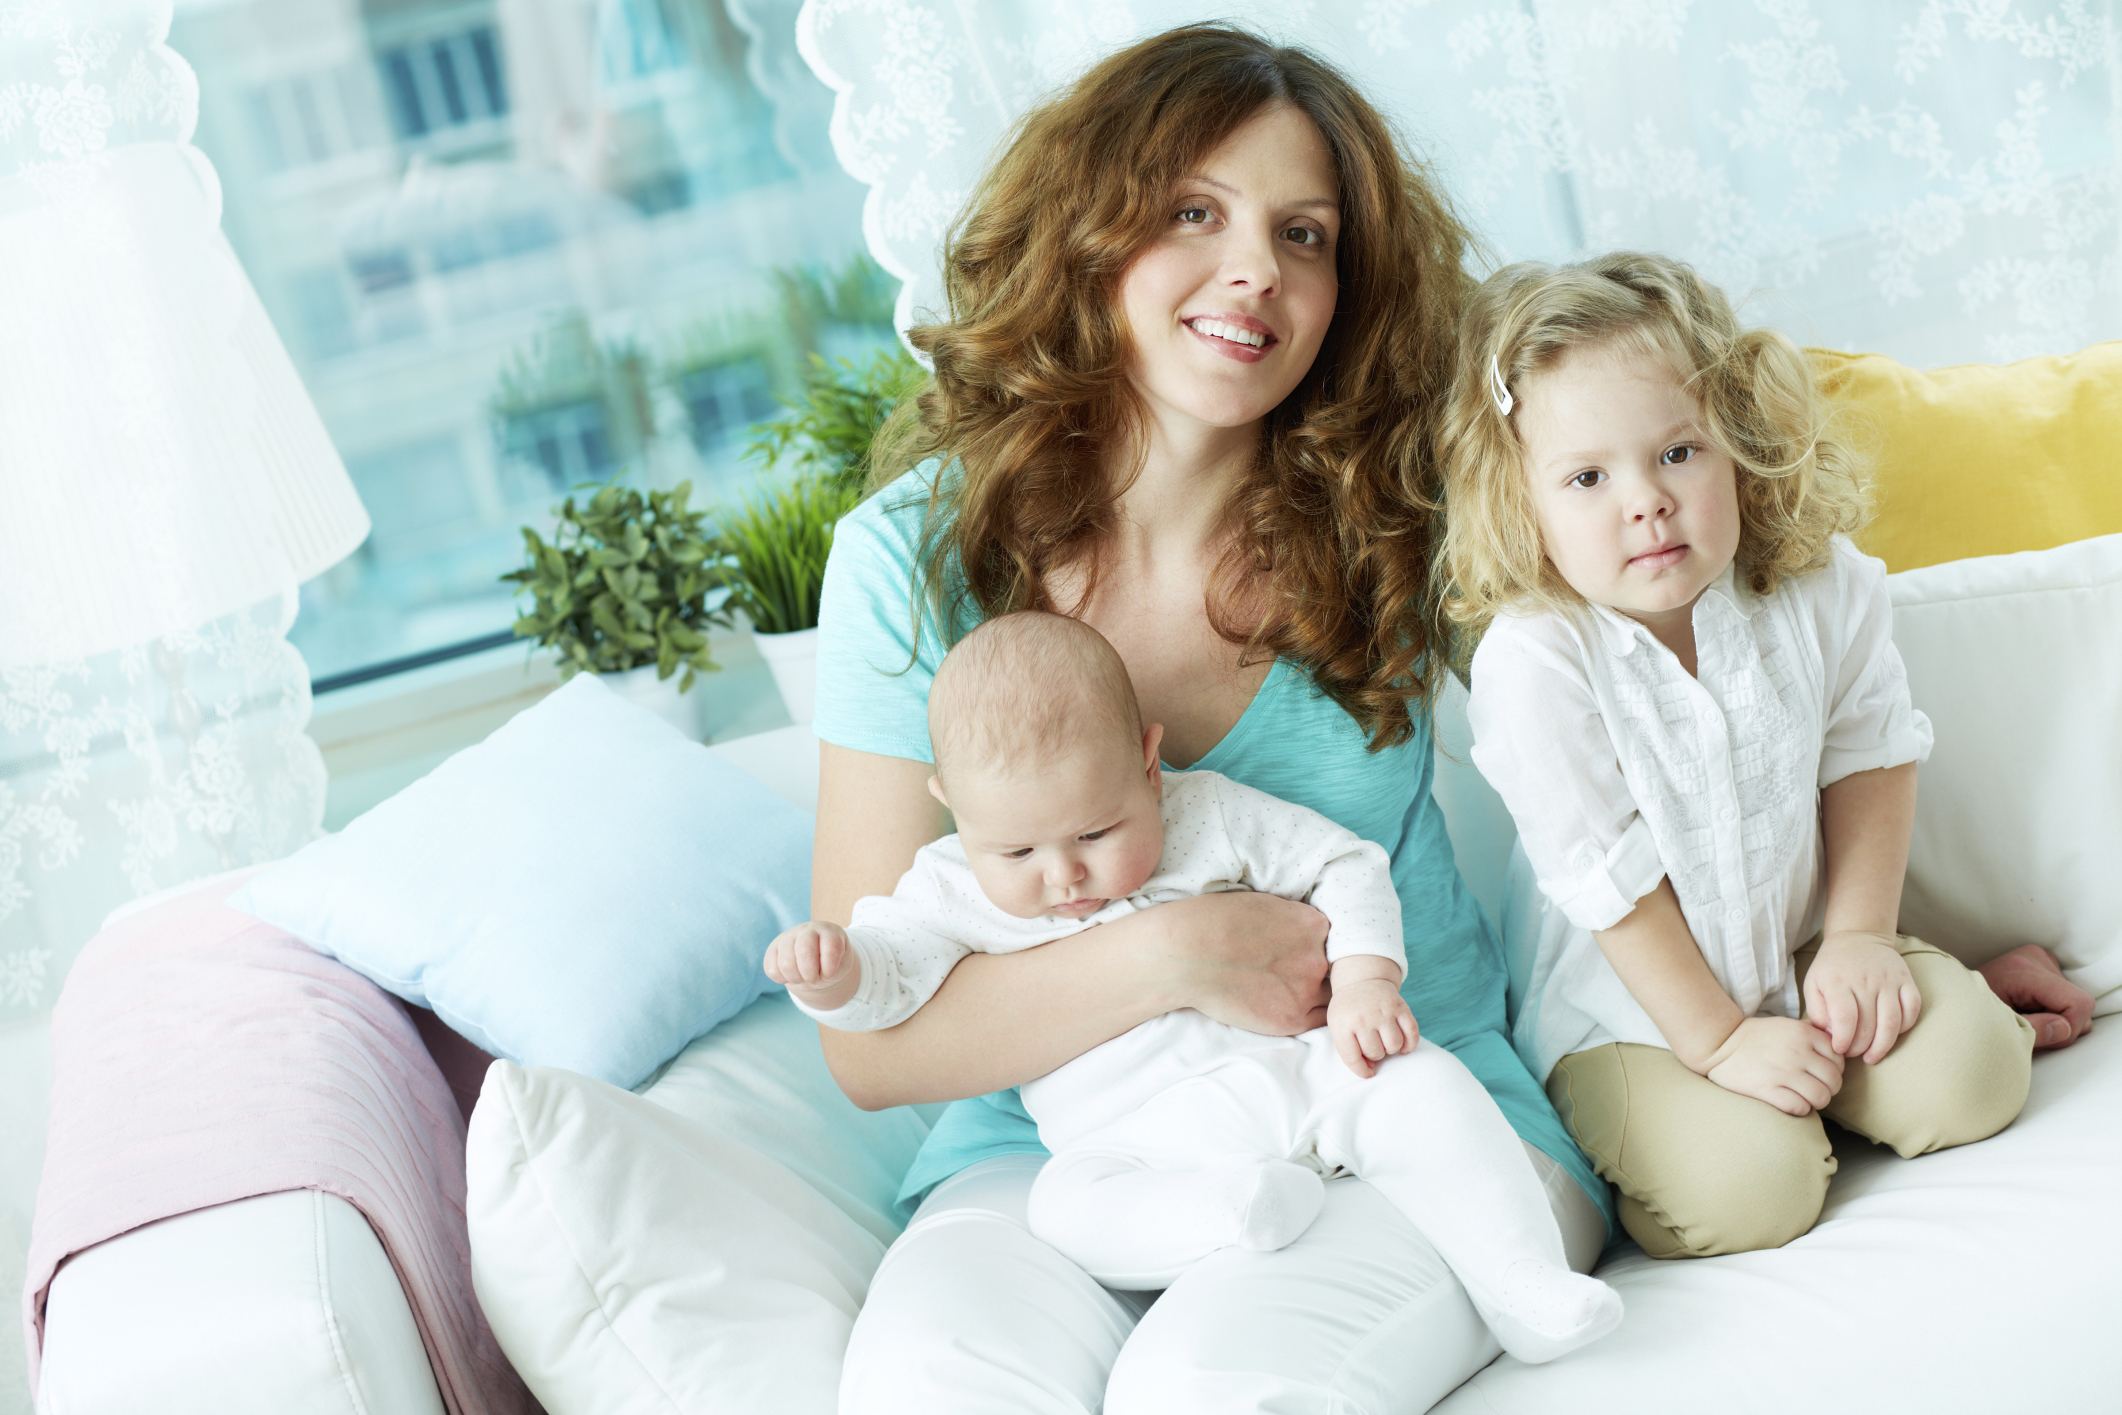 Having a Second Child? Tips for Managing a Toddler and New Baby